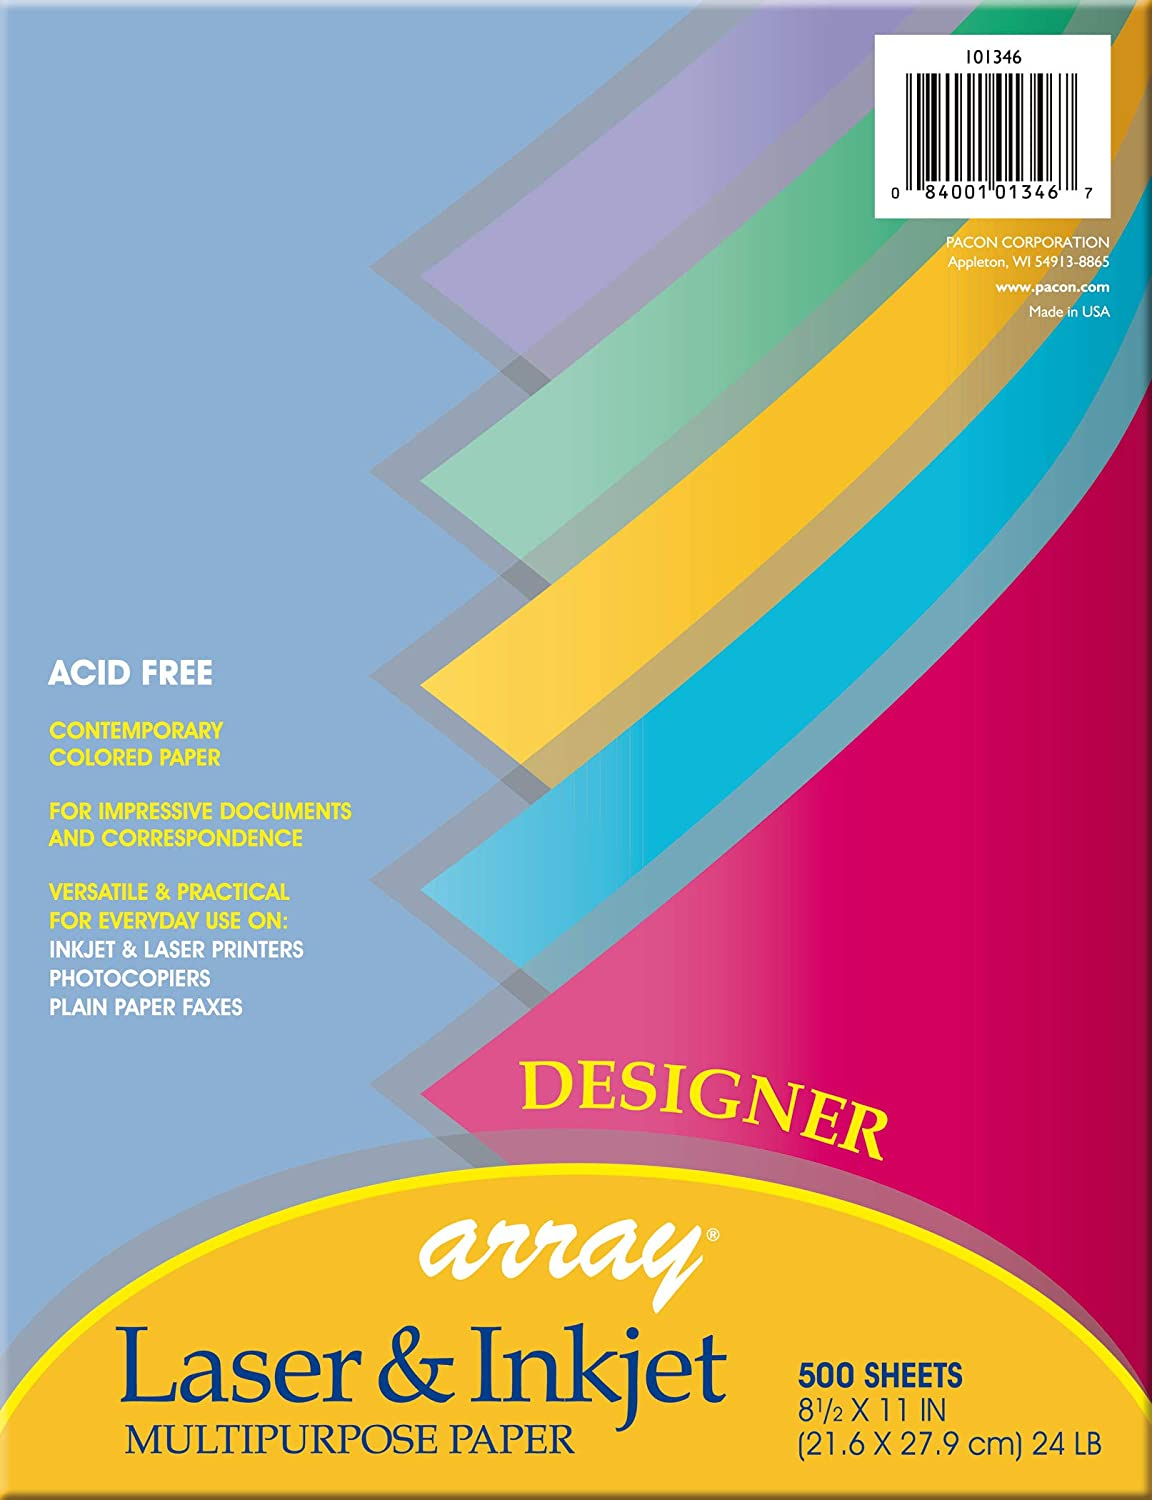 Pacon Array Bond Paper, 8.5x11-Inch, Designer Colors, 500-Sheet (101346) DOBA-PAC101346